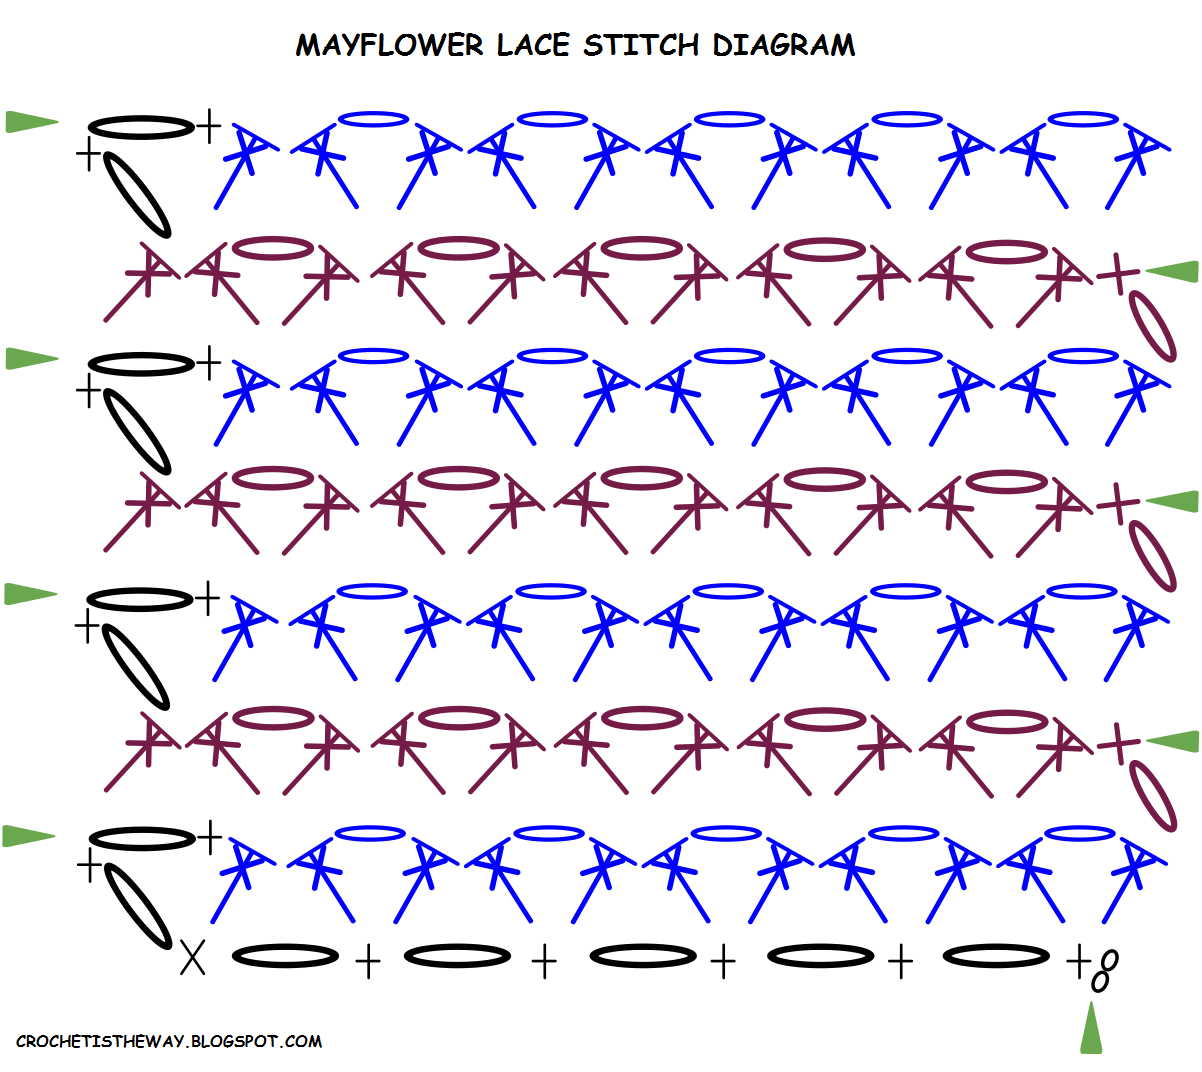 Crochet Is The Way Mayflower Lace Stitch Diagram Pattern Update